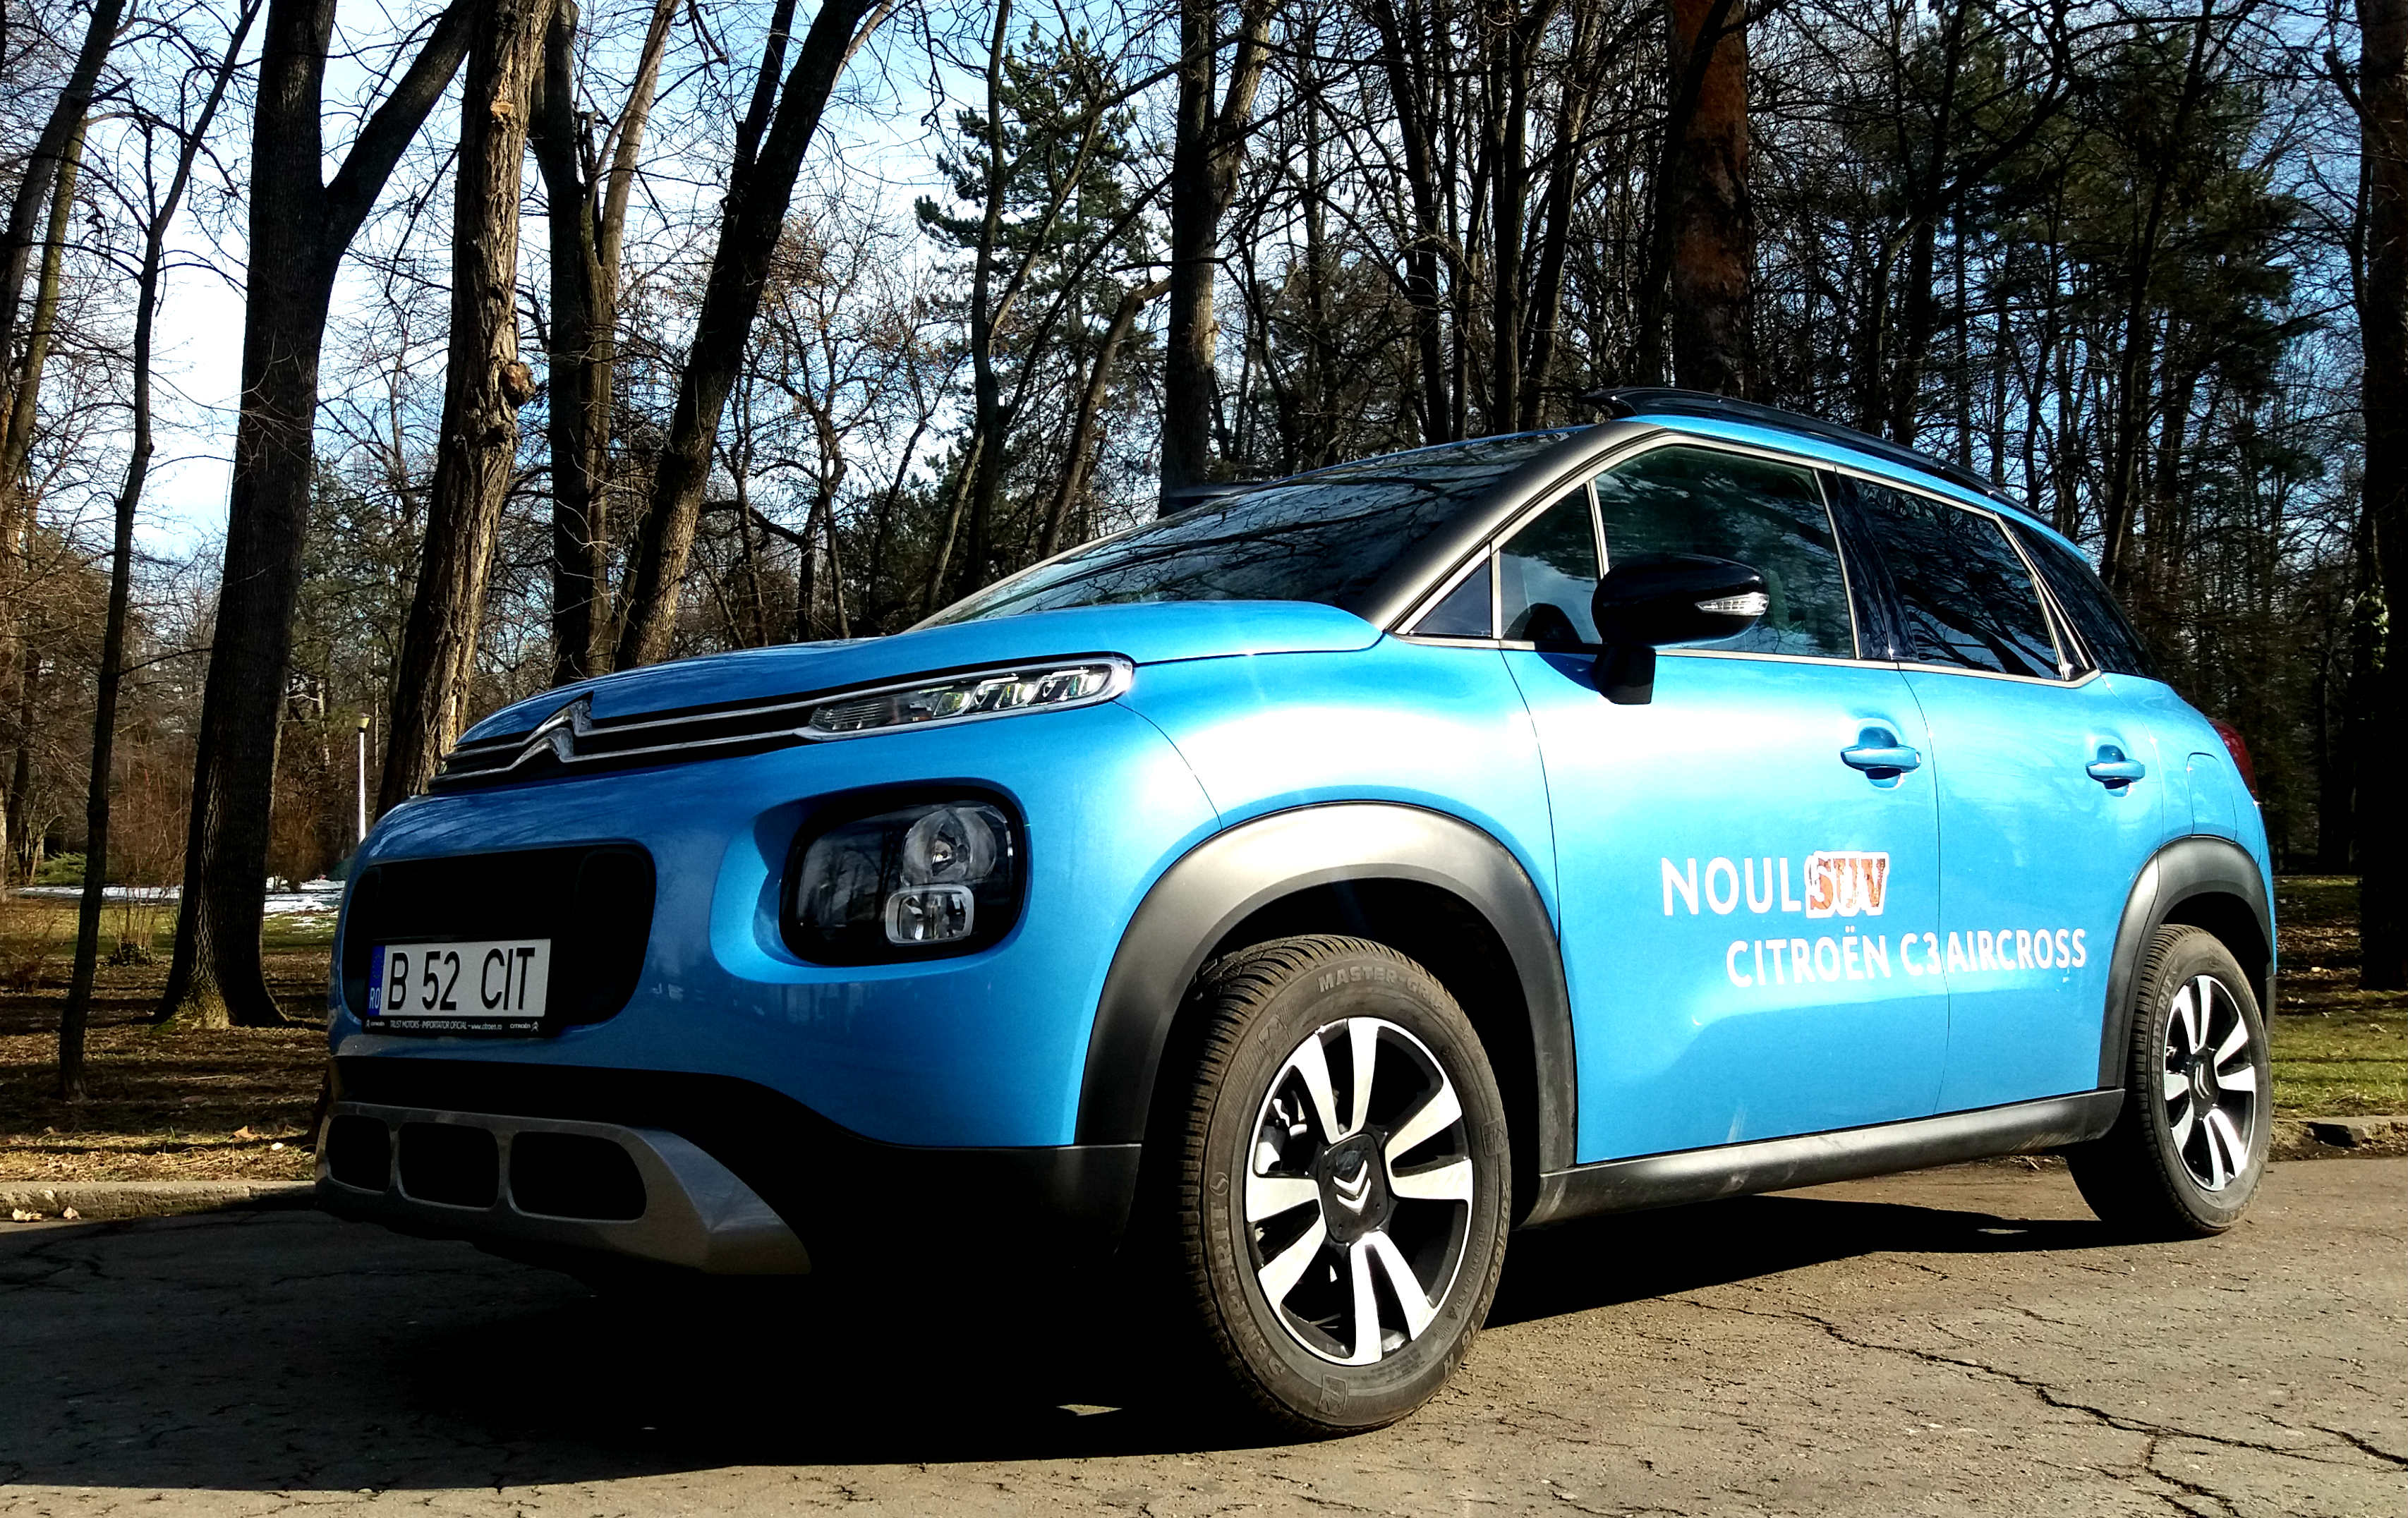 test drive Citroen C3 Aircross 1.6 BlueHDI Feel 100 CP Euro 6 2018, drive test Citroen C3 Aircross 1.6 BlueHDI Feel 100 CP Euro 6 2018, test romania Citroen C3 Aircross 1.6 BlueHDI Feel 100 CP Euro 6 2018, autolatest Citroen C3 Aircross 1.6 BlueHDI Feel 100 CP Euro 6 2018, teste auto Citroen C3 Aircross 1.6 BlueHDI Feel 100 CP Euro 6 2018, consum Citroen C3 Aircross 1.6 BlueHDI Feel 100 CP Euro 6 2018, pret Citroen C3 Aircross 1.6 BlueHDI Feel 100 CP Euro 6 2018, renault captur vs Citroen C3 Aircross 1.6 BlueHDI Feel 100 CP Euro 6 2018, vw troc vs Citroen C3 Aircross 1.6 BlueHDI Feel 100 CP Euro 6 2018, kia stonic vs Citroen C3 Aircross 1.6 BlueHDI Feel 100 CP Euro 6 2018, garda la sol, lista preturi, oferte Citroen C3 Aircross 1.6 BlueHDI Feel 100 CP Euro 6 2018, viteza maxima, review Citroen C3 Aircross 1.6 BlueHDI Feel 100 CP Euro 6 2018